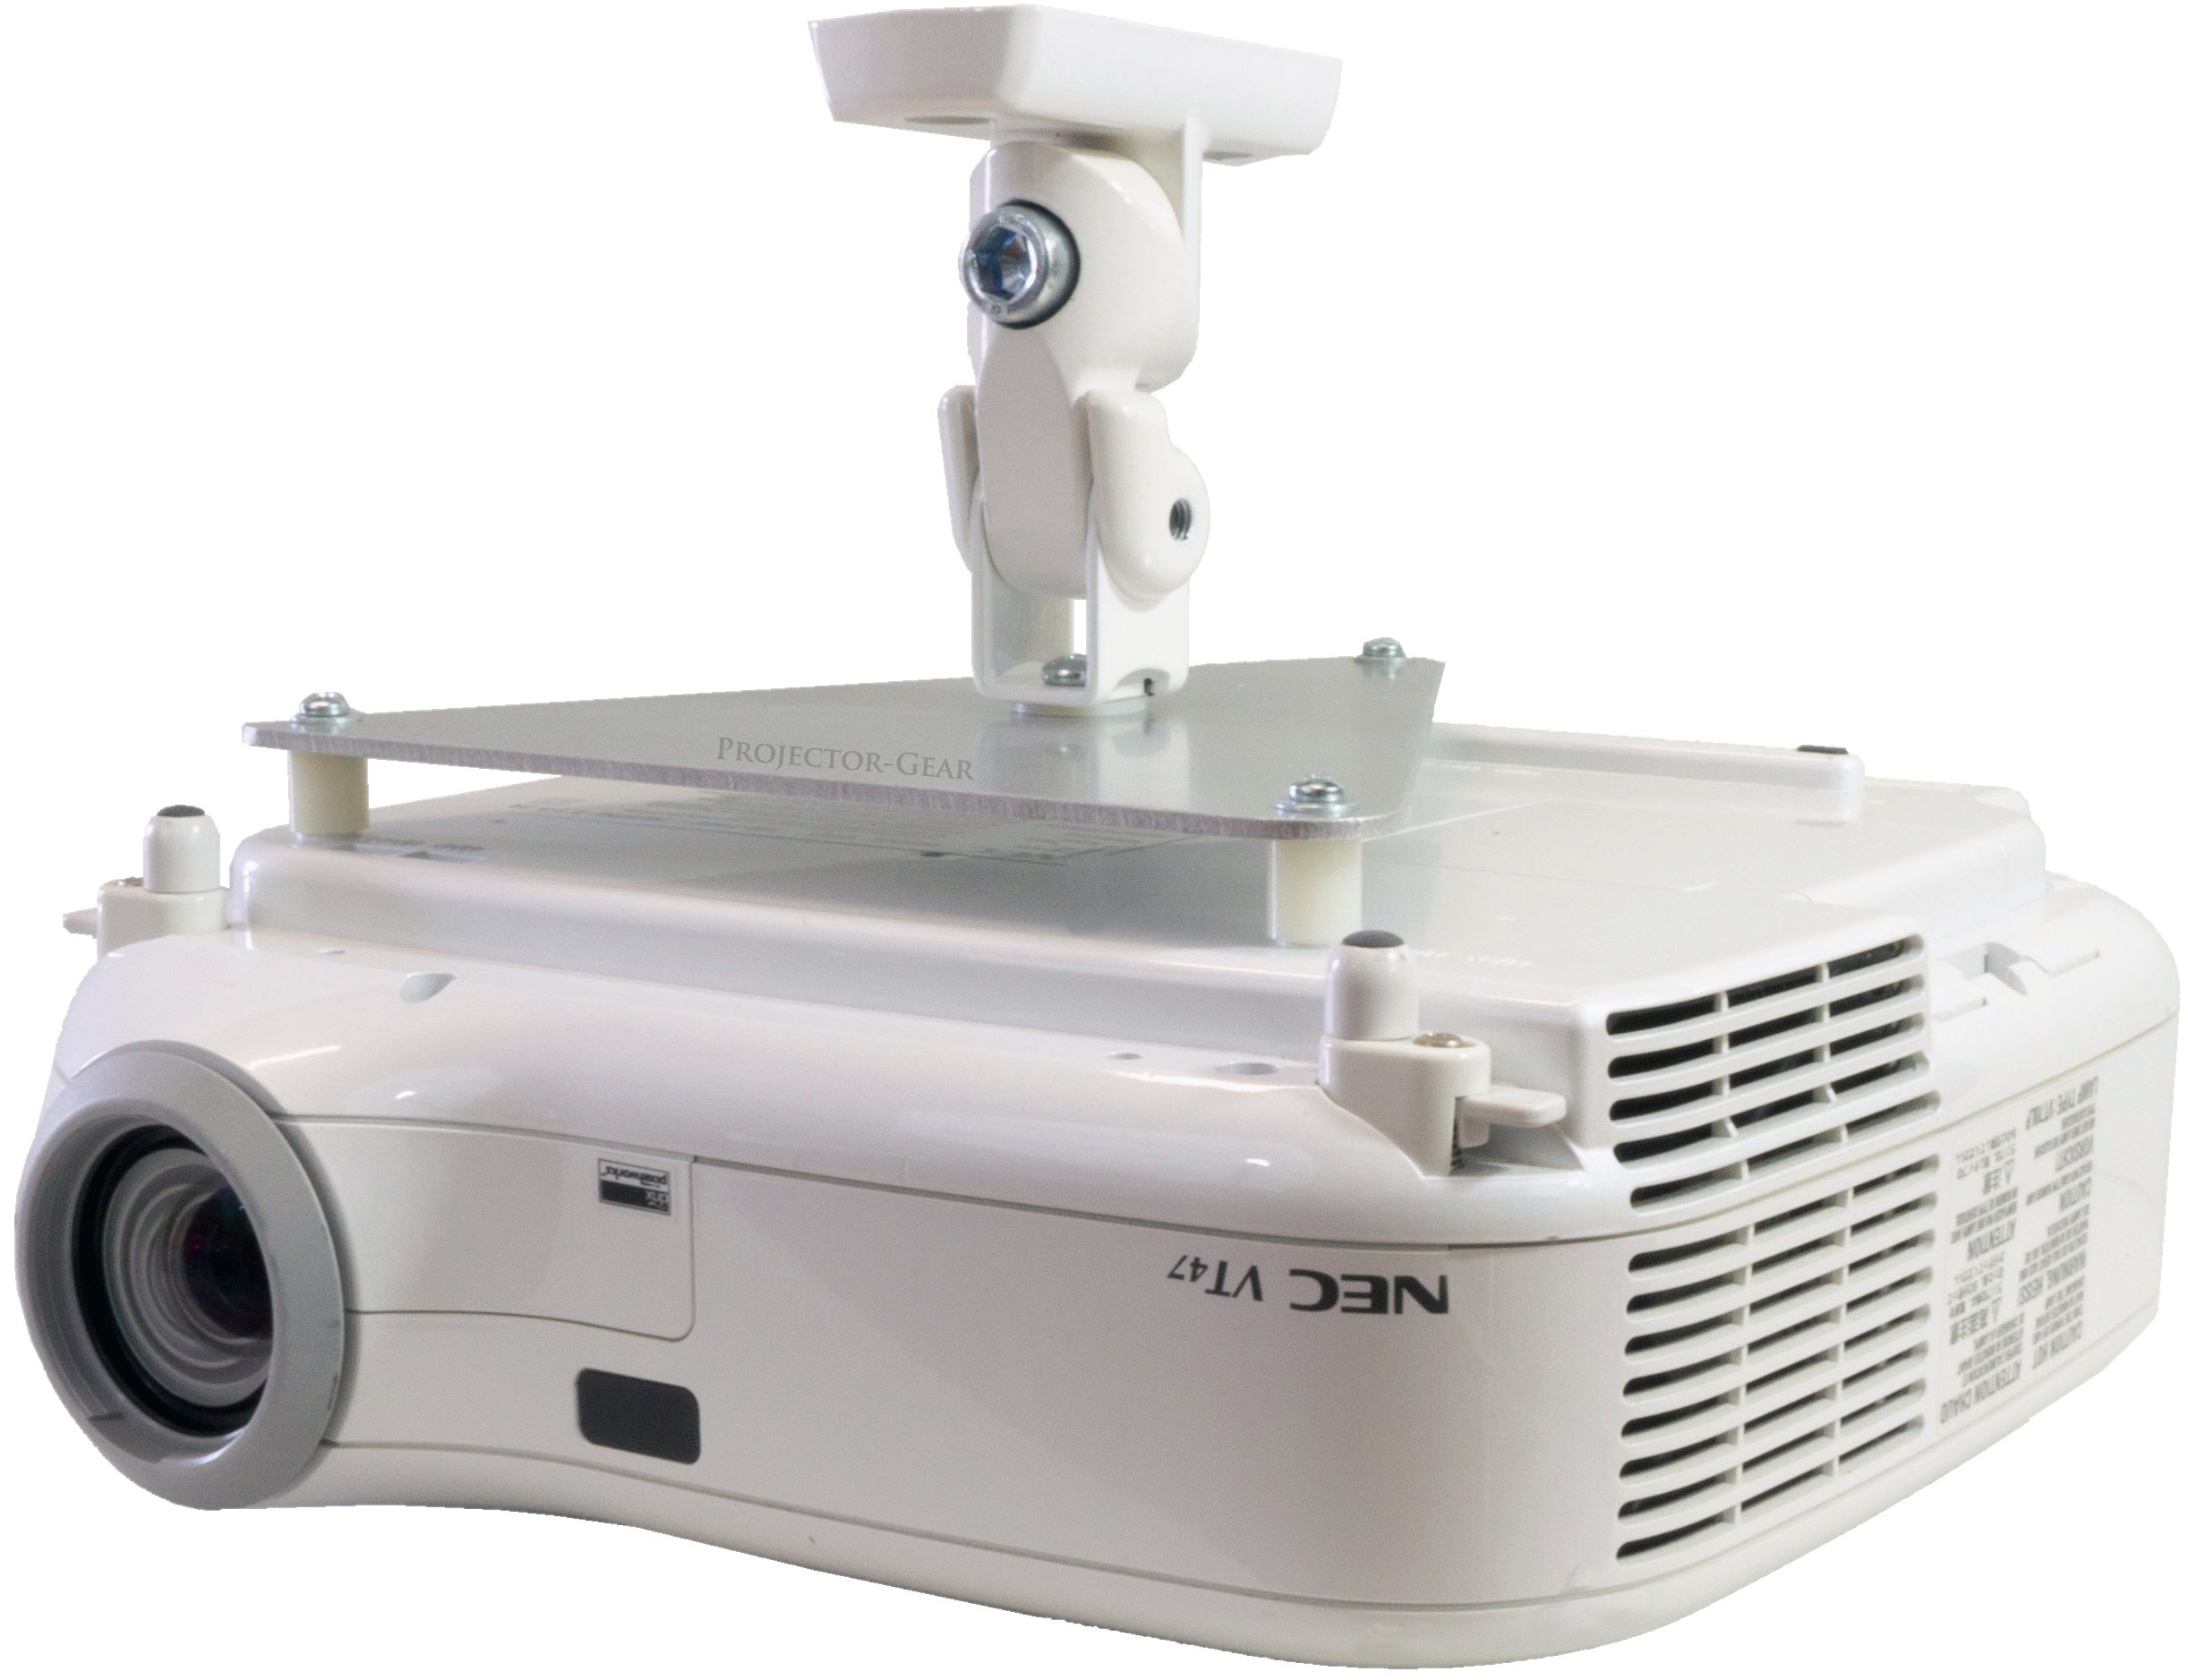 Projector-Gear Projector Ceiling Mount for OPTOMA TX536 TX542 TX542-3D TX610ST TX612 TX612-3D